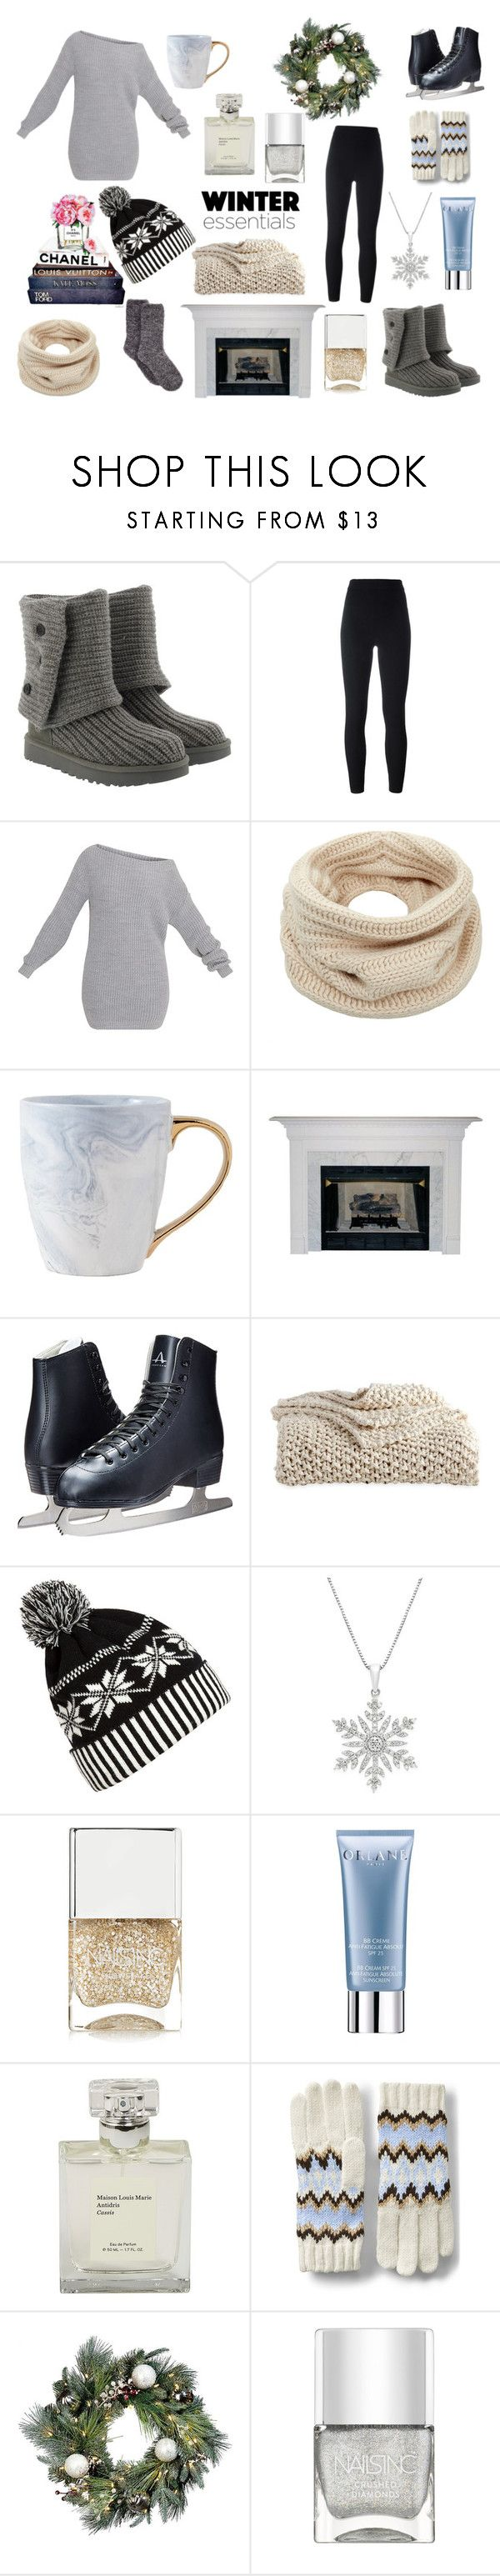 """""""Winter"""" by cgtaylor927 ❤ liked on Polyvore featuring UGG, Yeezy by Kanye West, Helmut Lang, DKNY, WithChic, Nails Inc., Orlane, Lands' End and Improvements"""